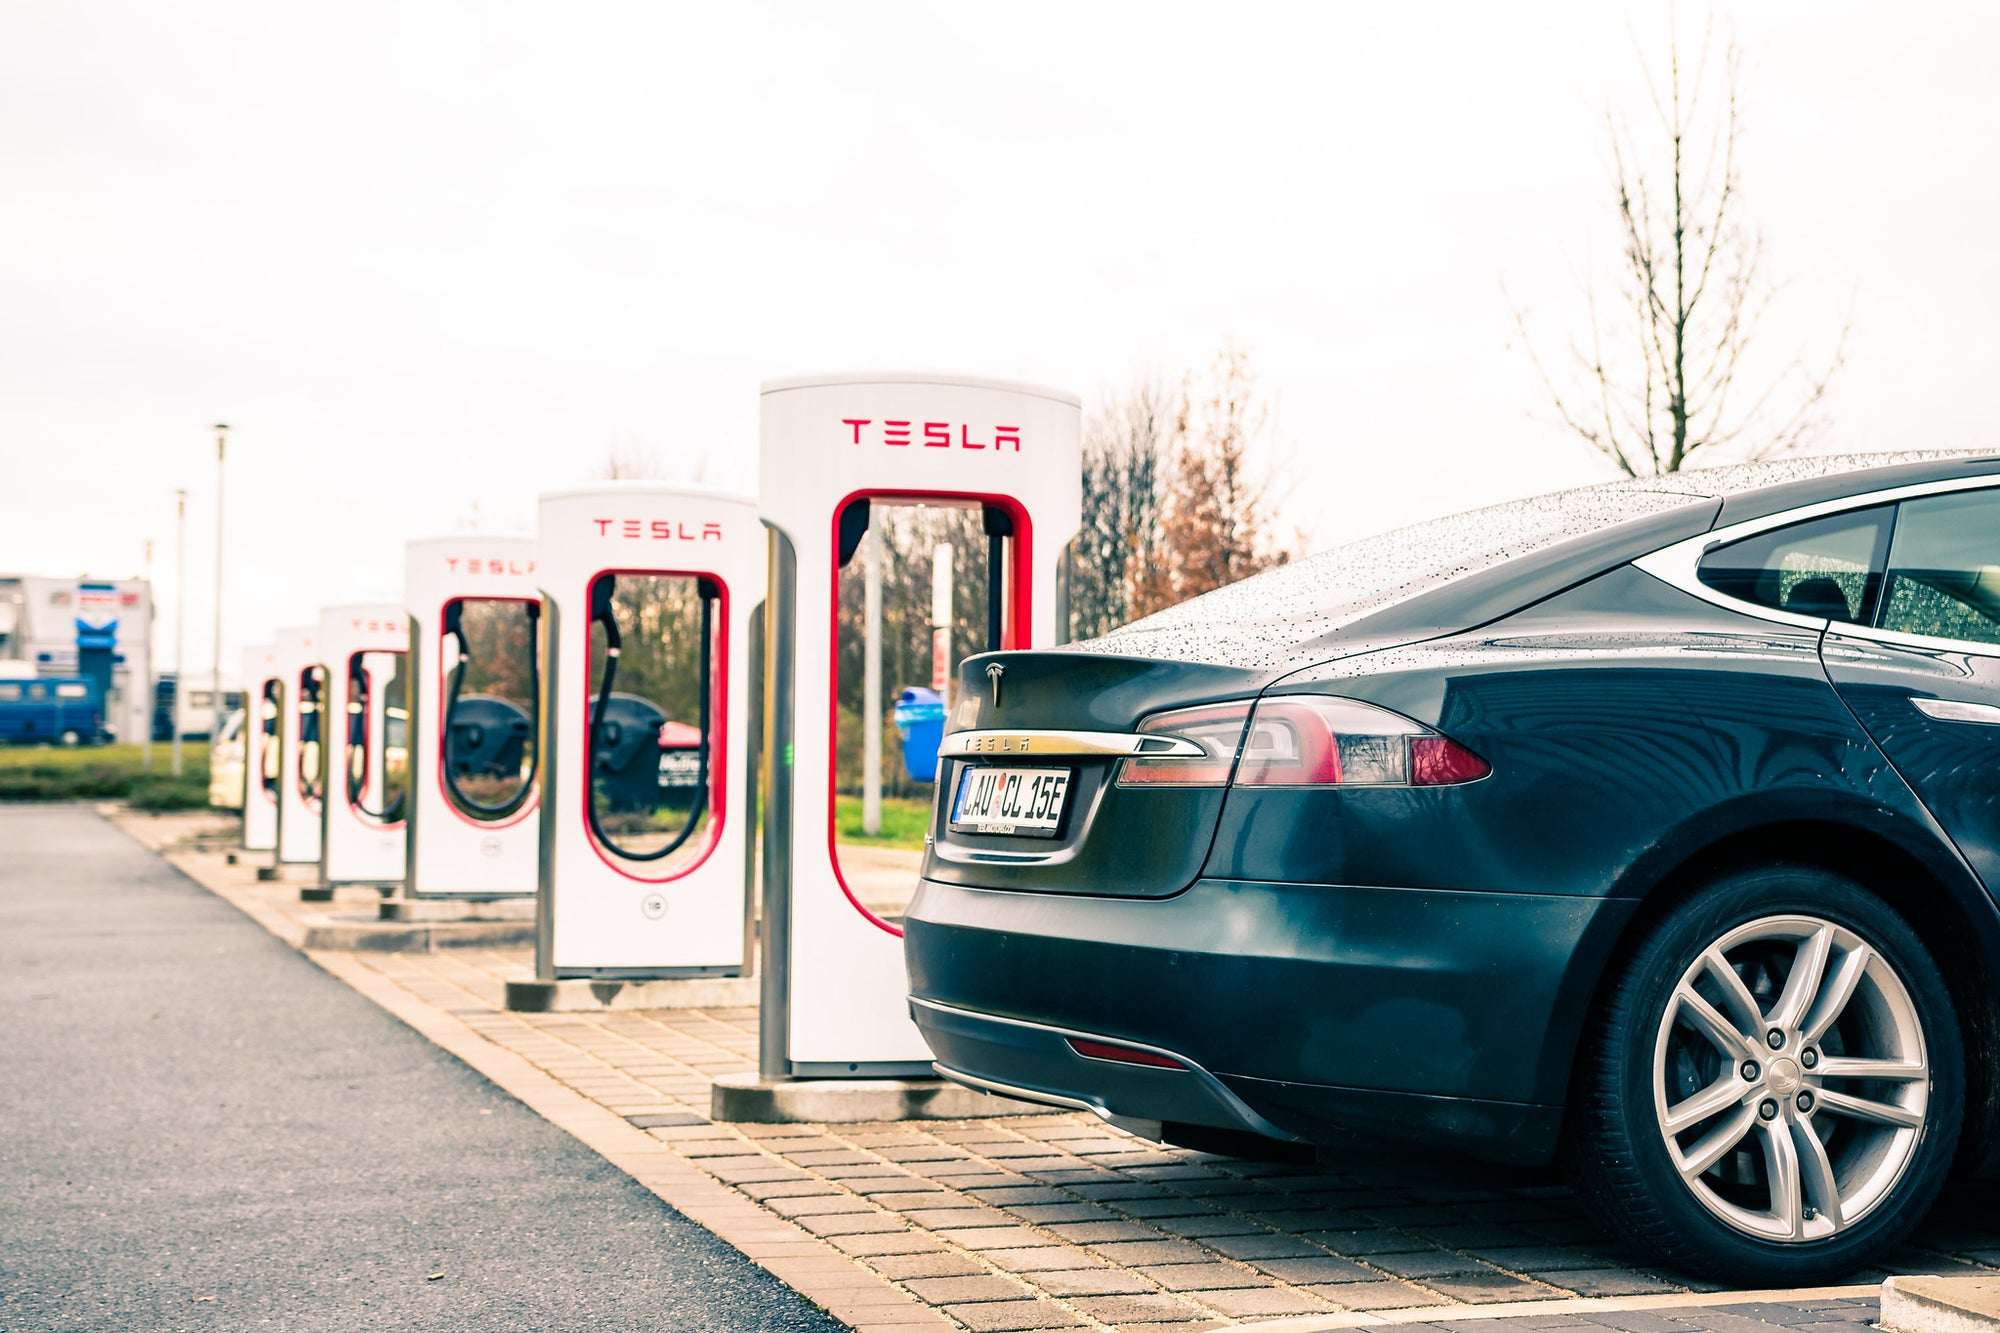 Tesla-Supercharger-Maxwell-Technologies-Lithium-batteries